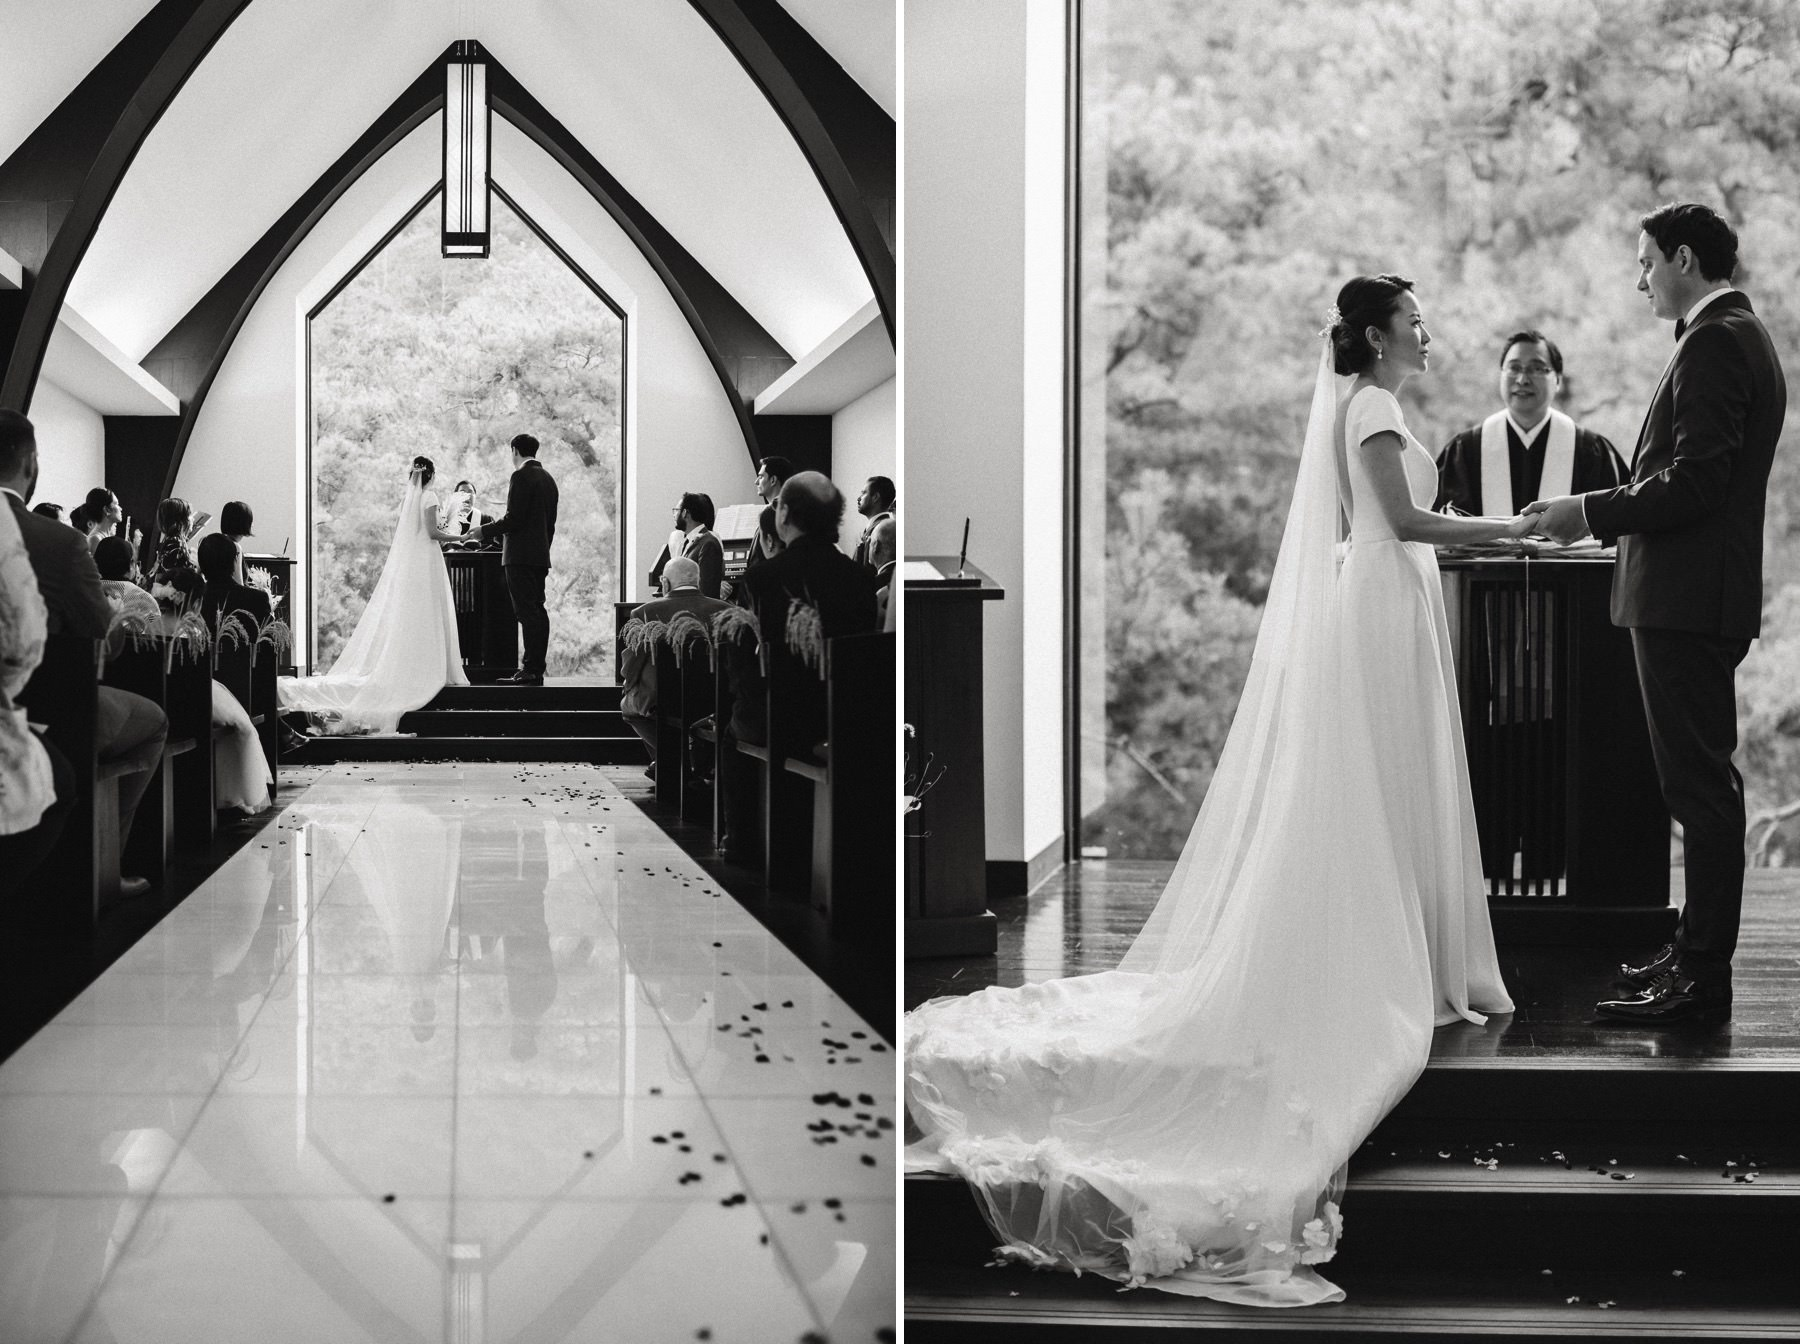 Shozan resort chapel wedding